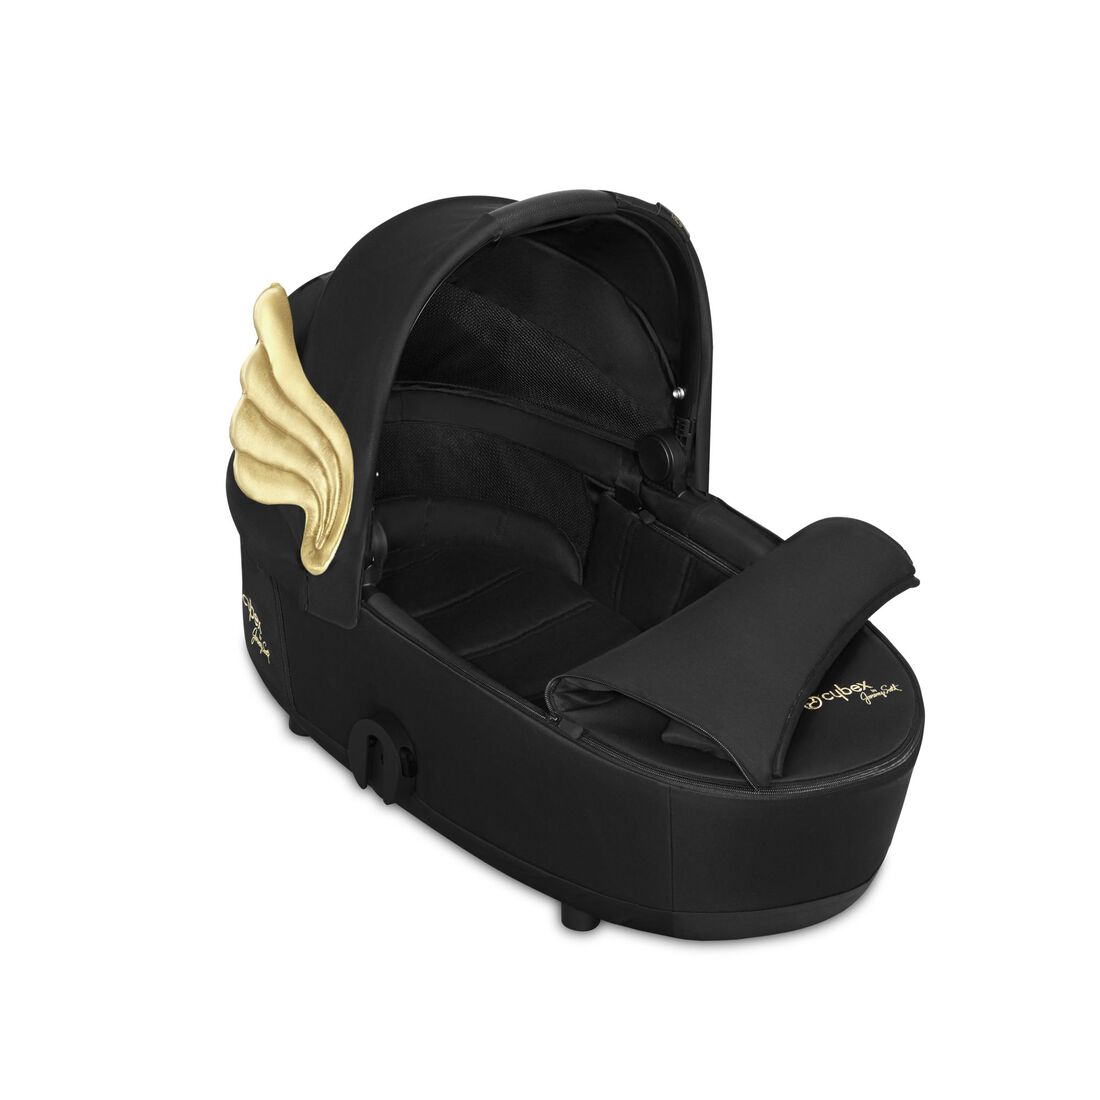 CYBEX Mios Lux Carry Cot - Wings in Wings large Bild 2